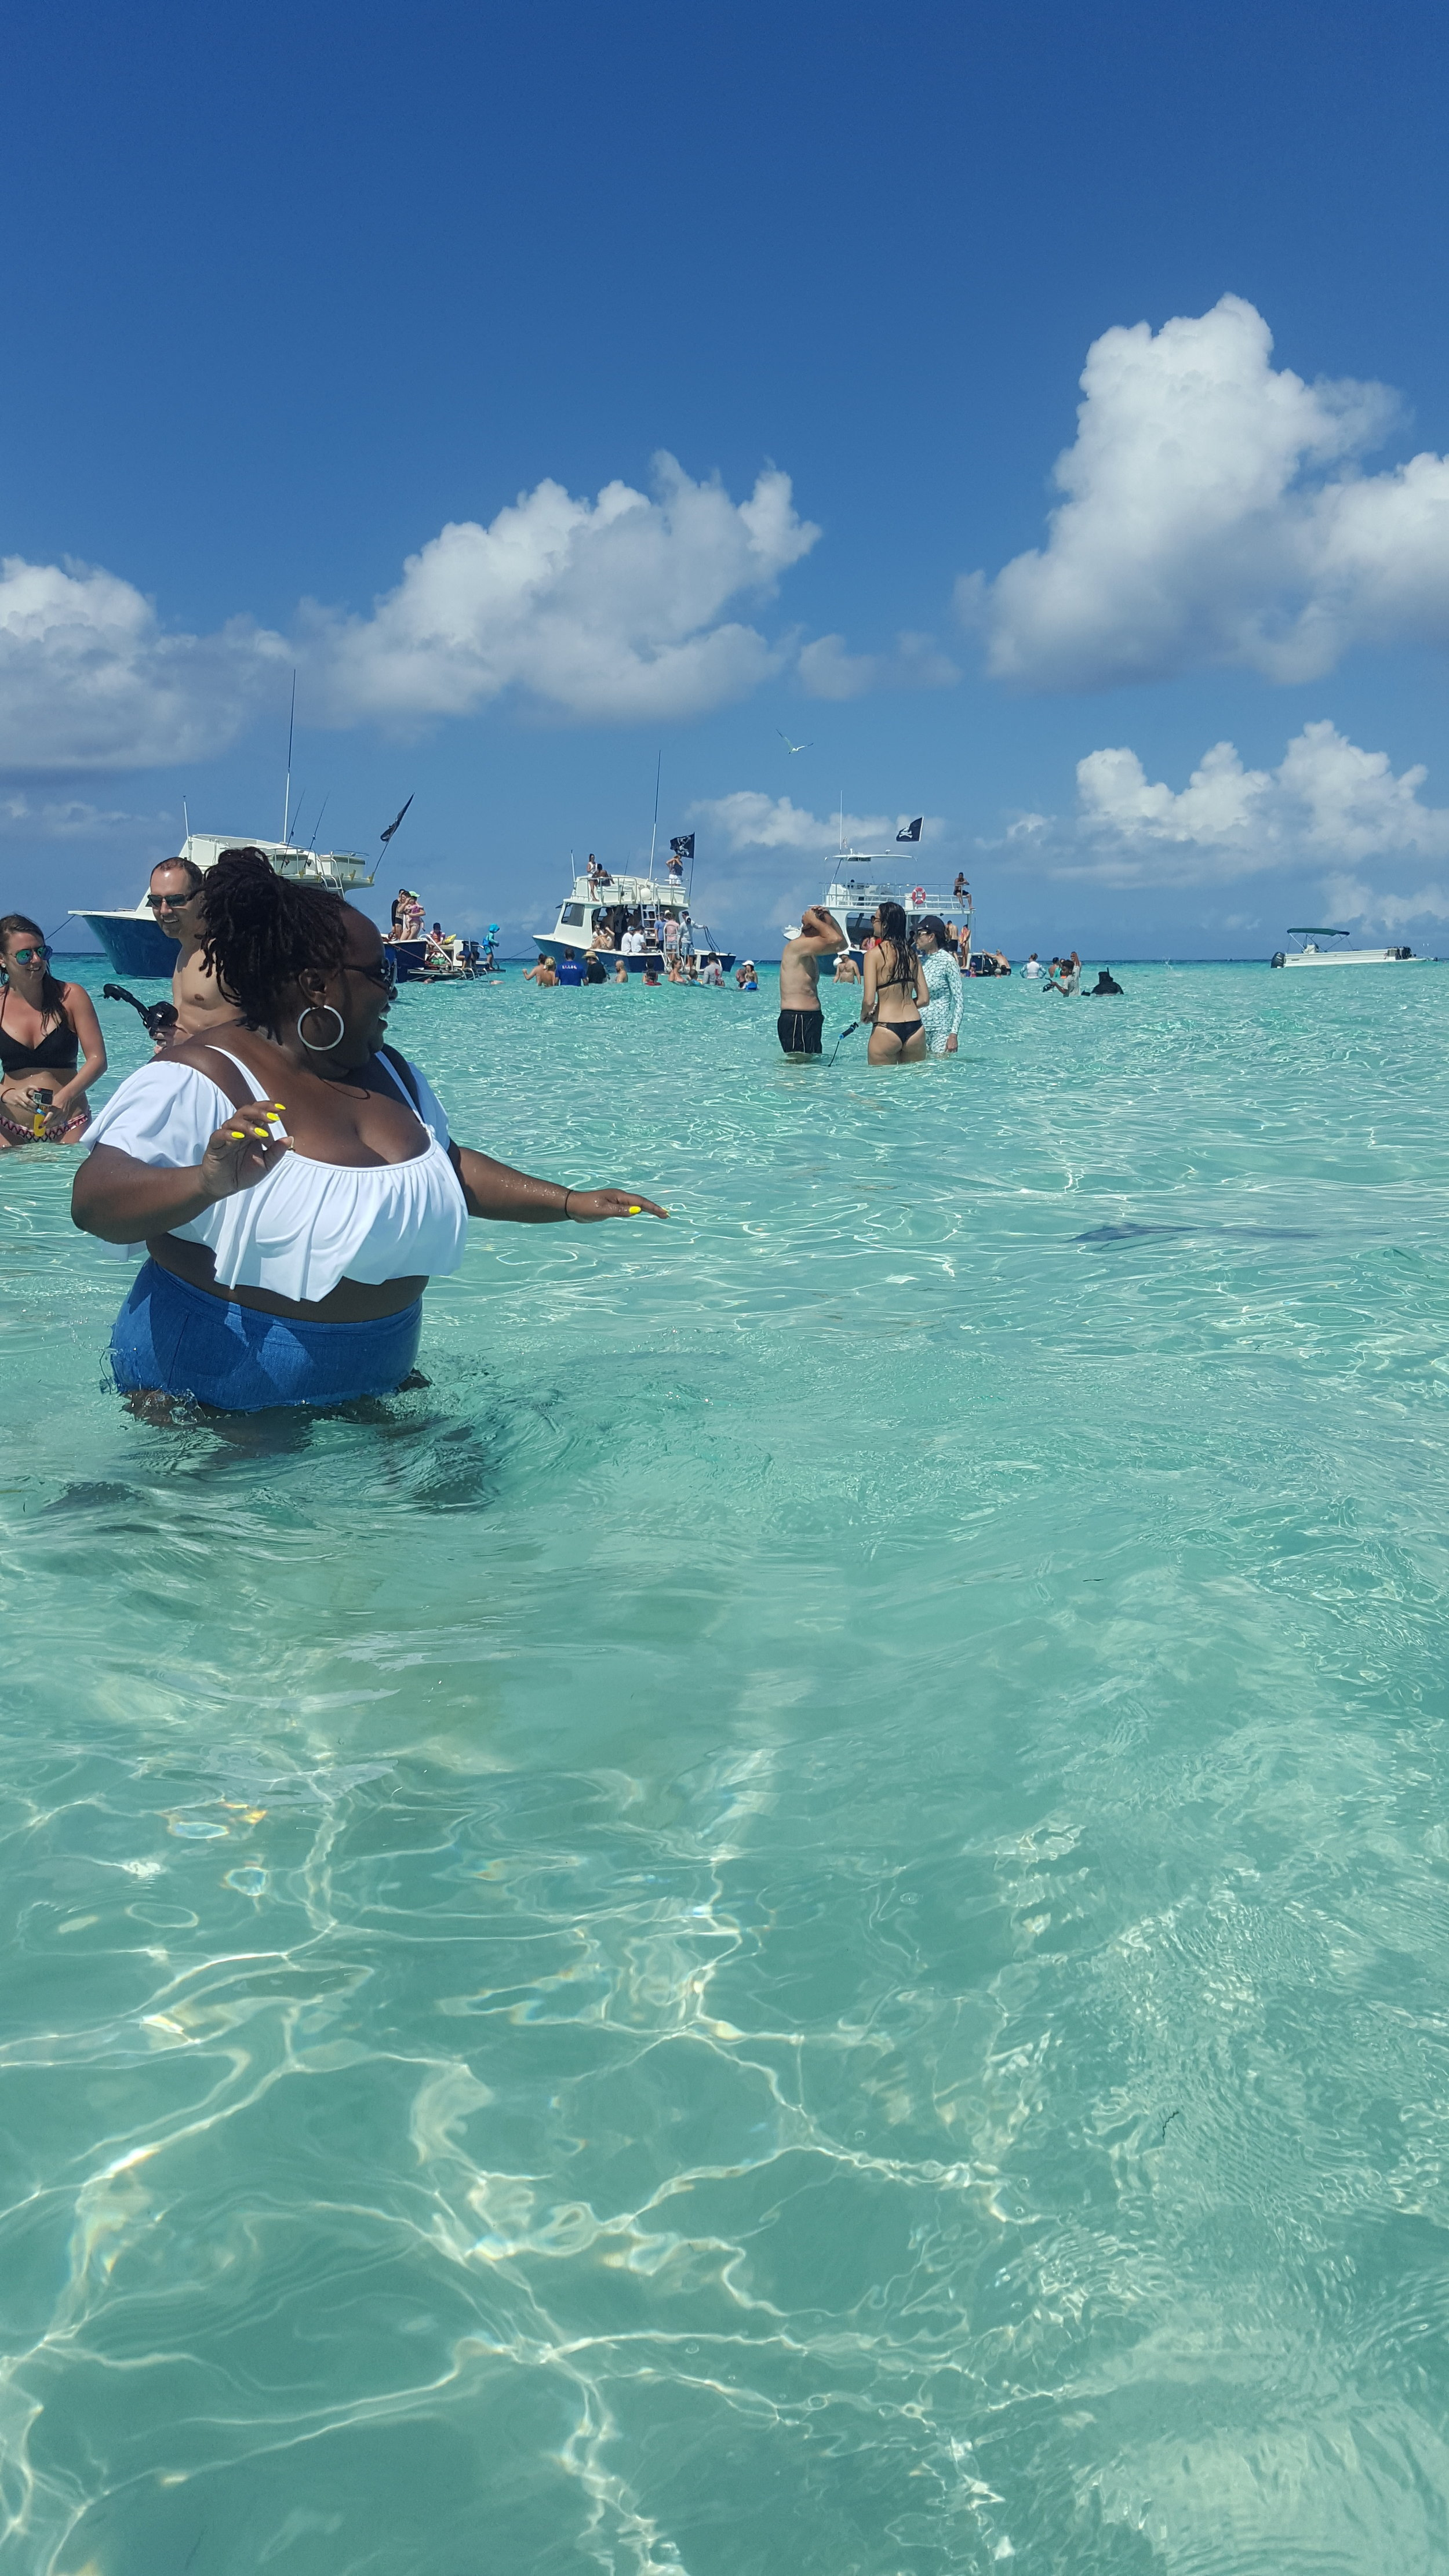 I was posing for a sexy swimsuit picture when a stingray tried to roll up on me!